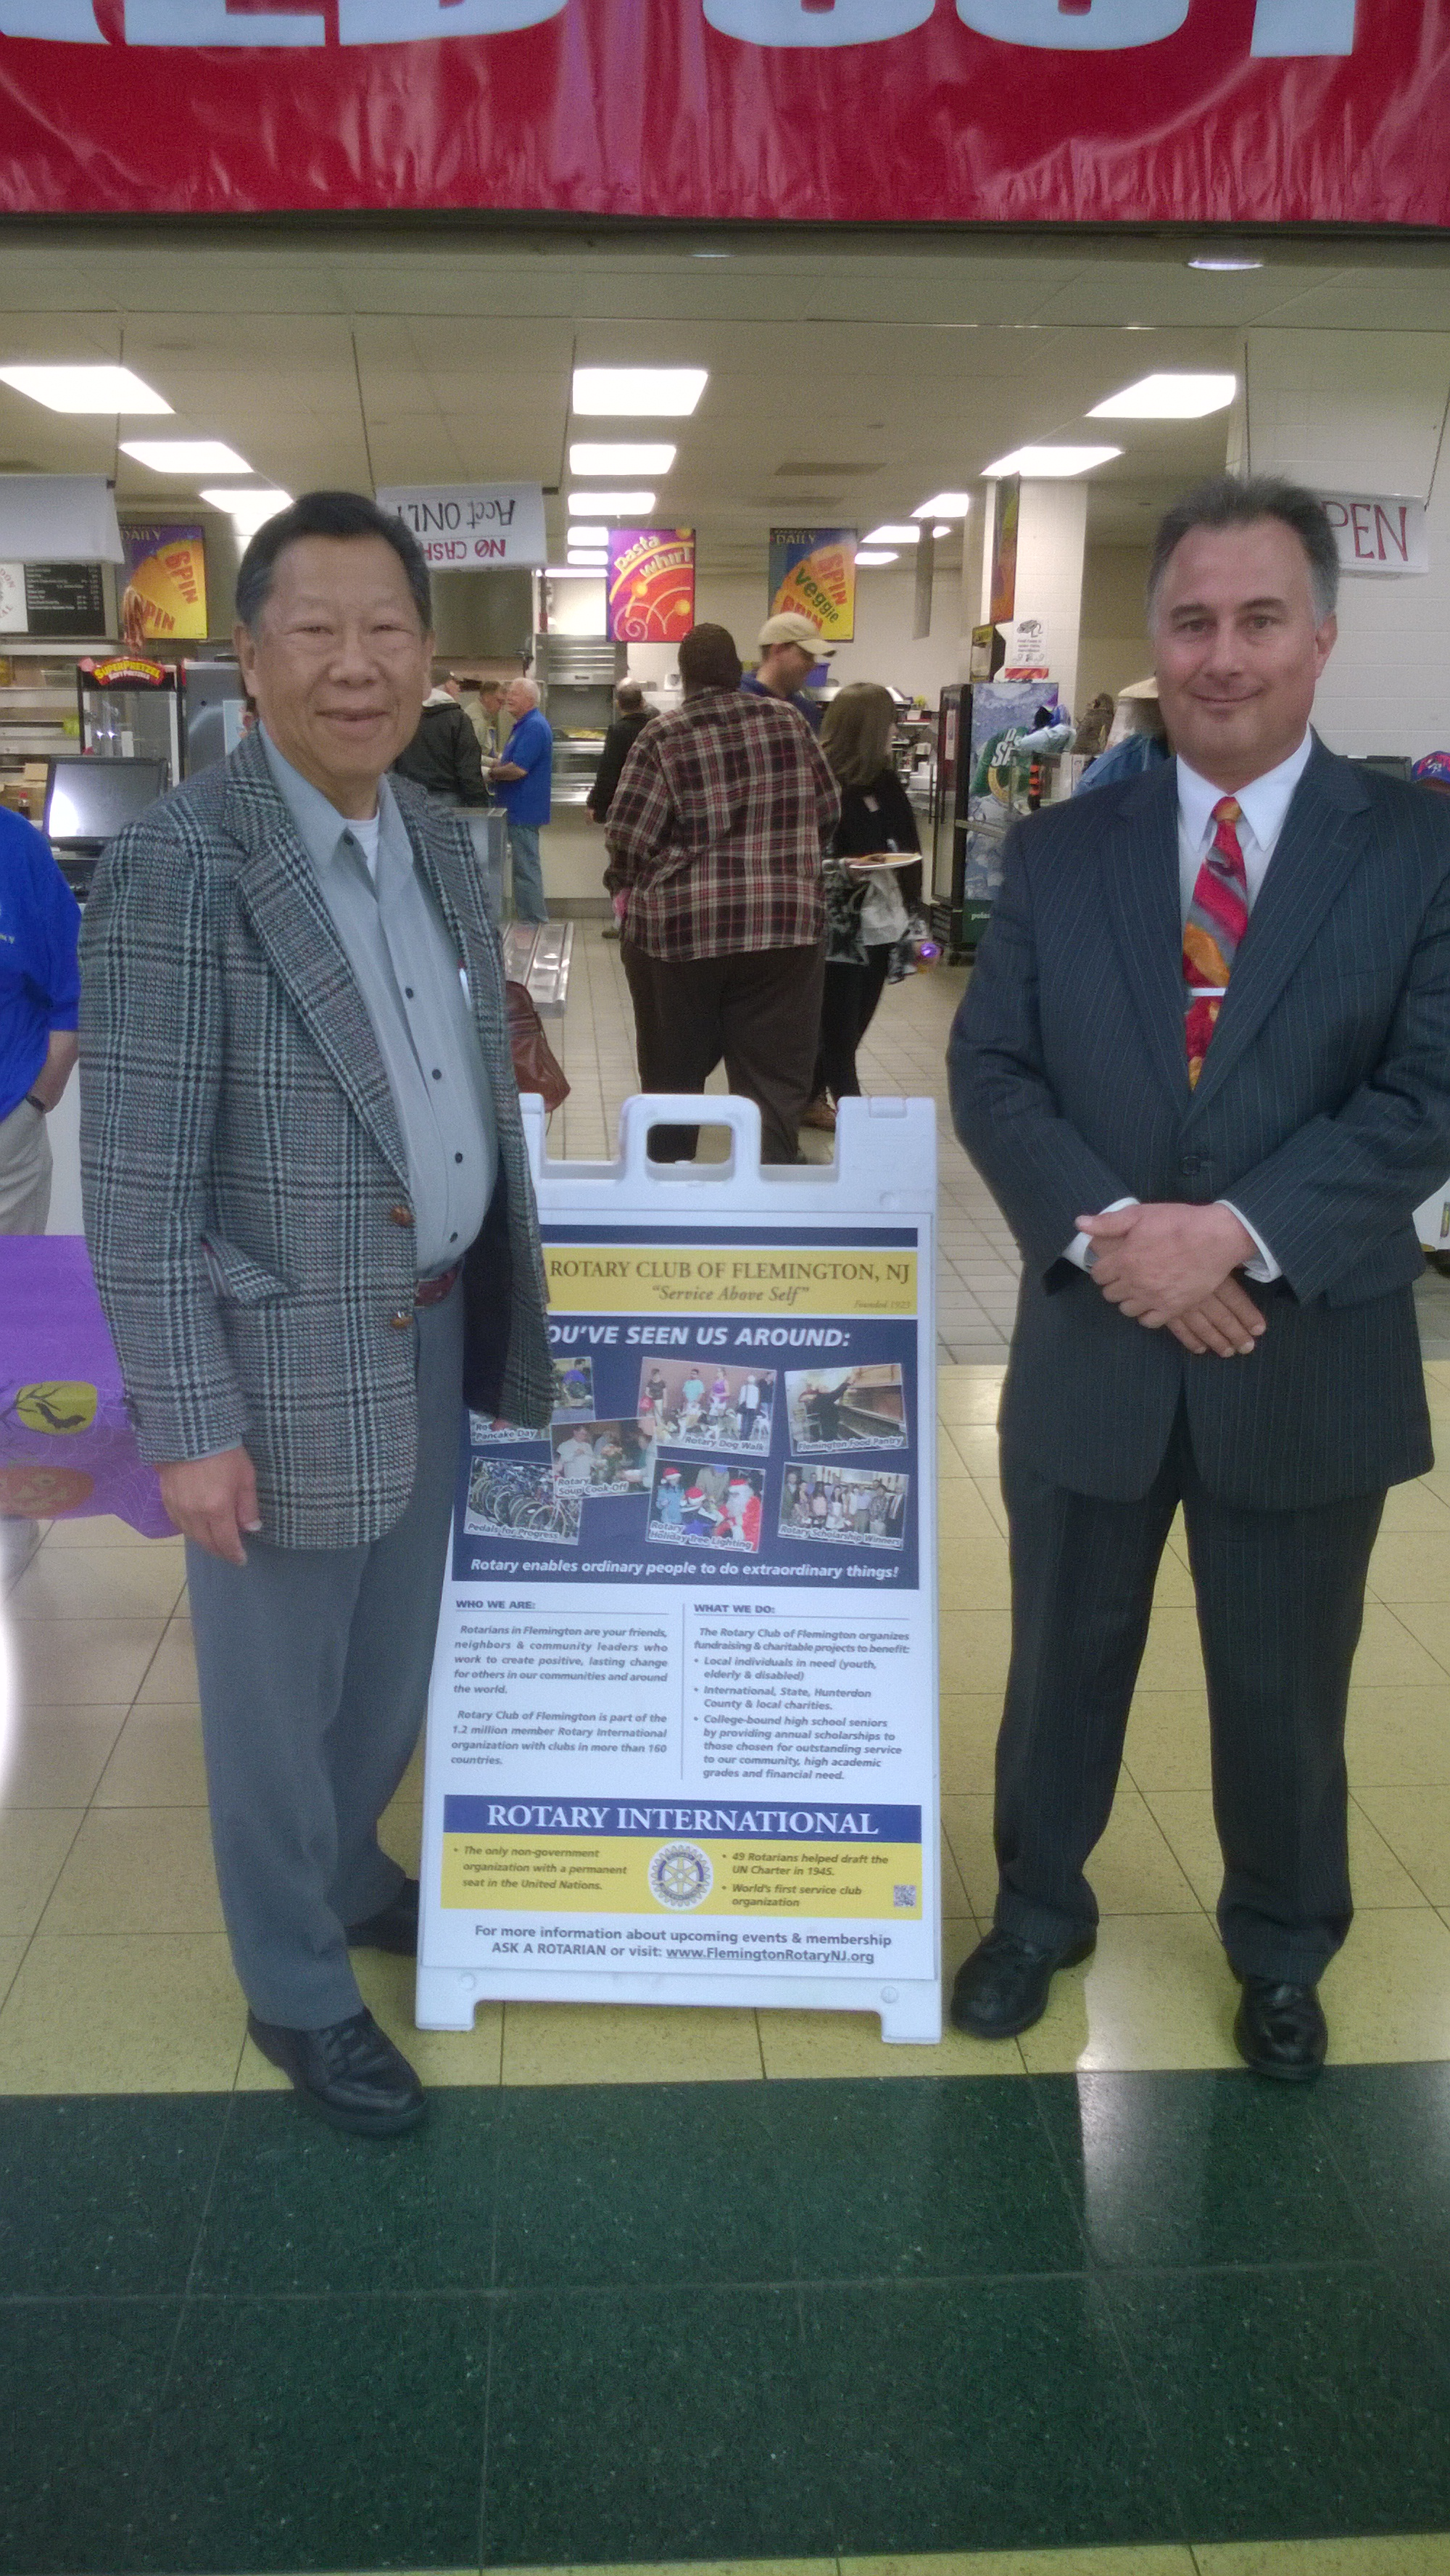 Rein and Chen at a Rotary Club breakfast fundraiser at Hunterdon Central High School on 11/01/14